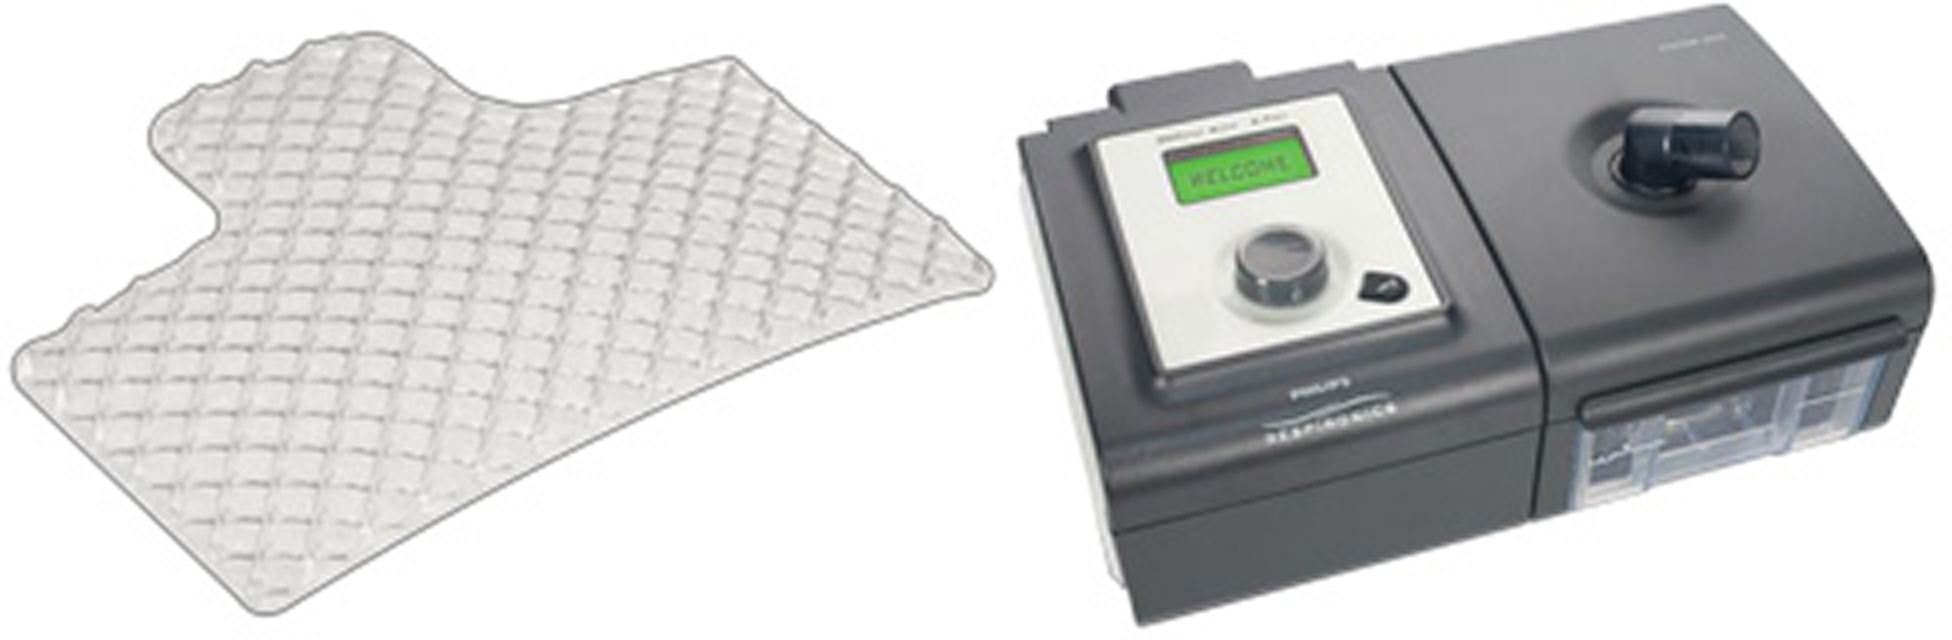 System One REMStar Ultrafine Disposable Filter